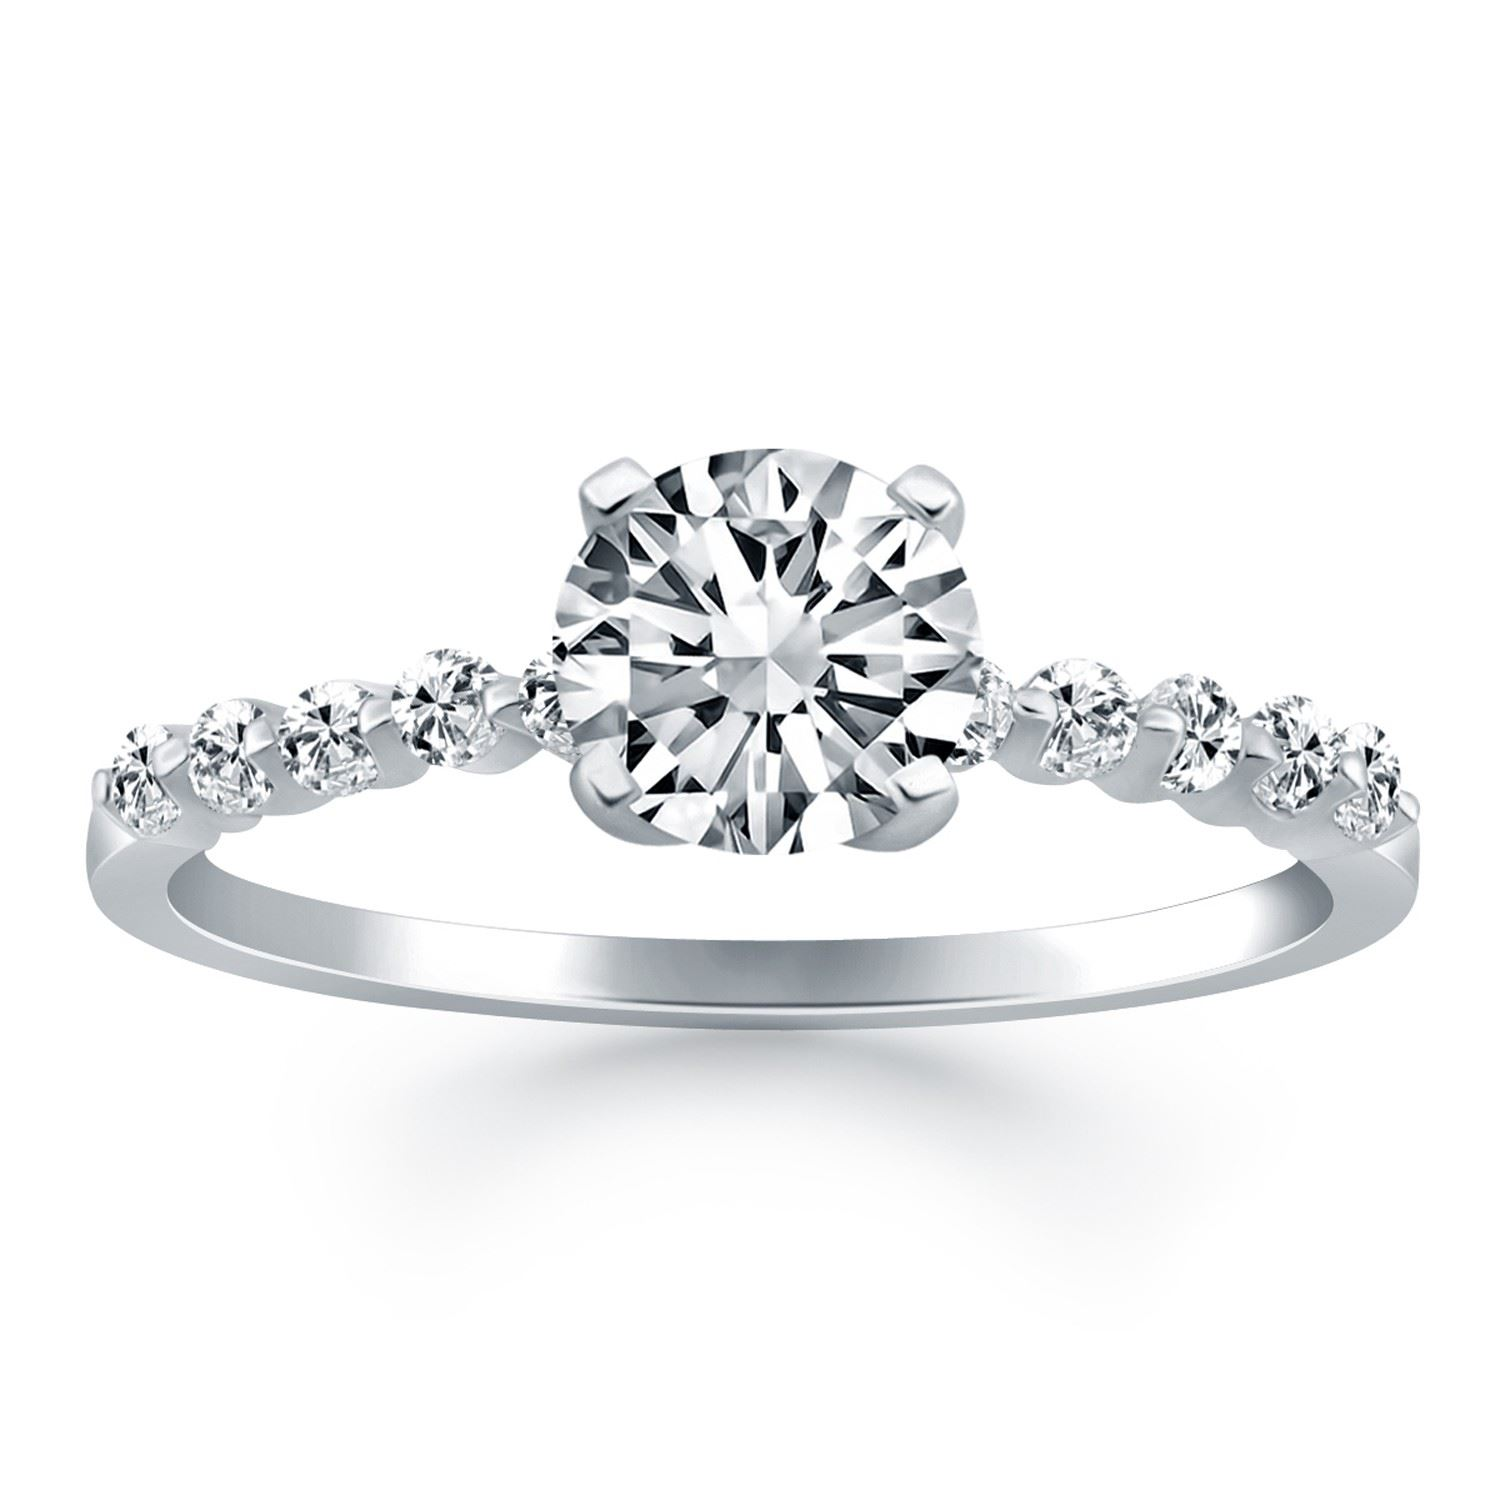 set engagement band diamond product cathedral bridal wedding shared prong rings ring